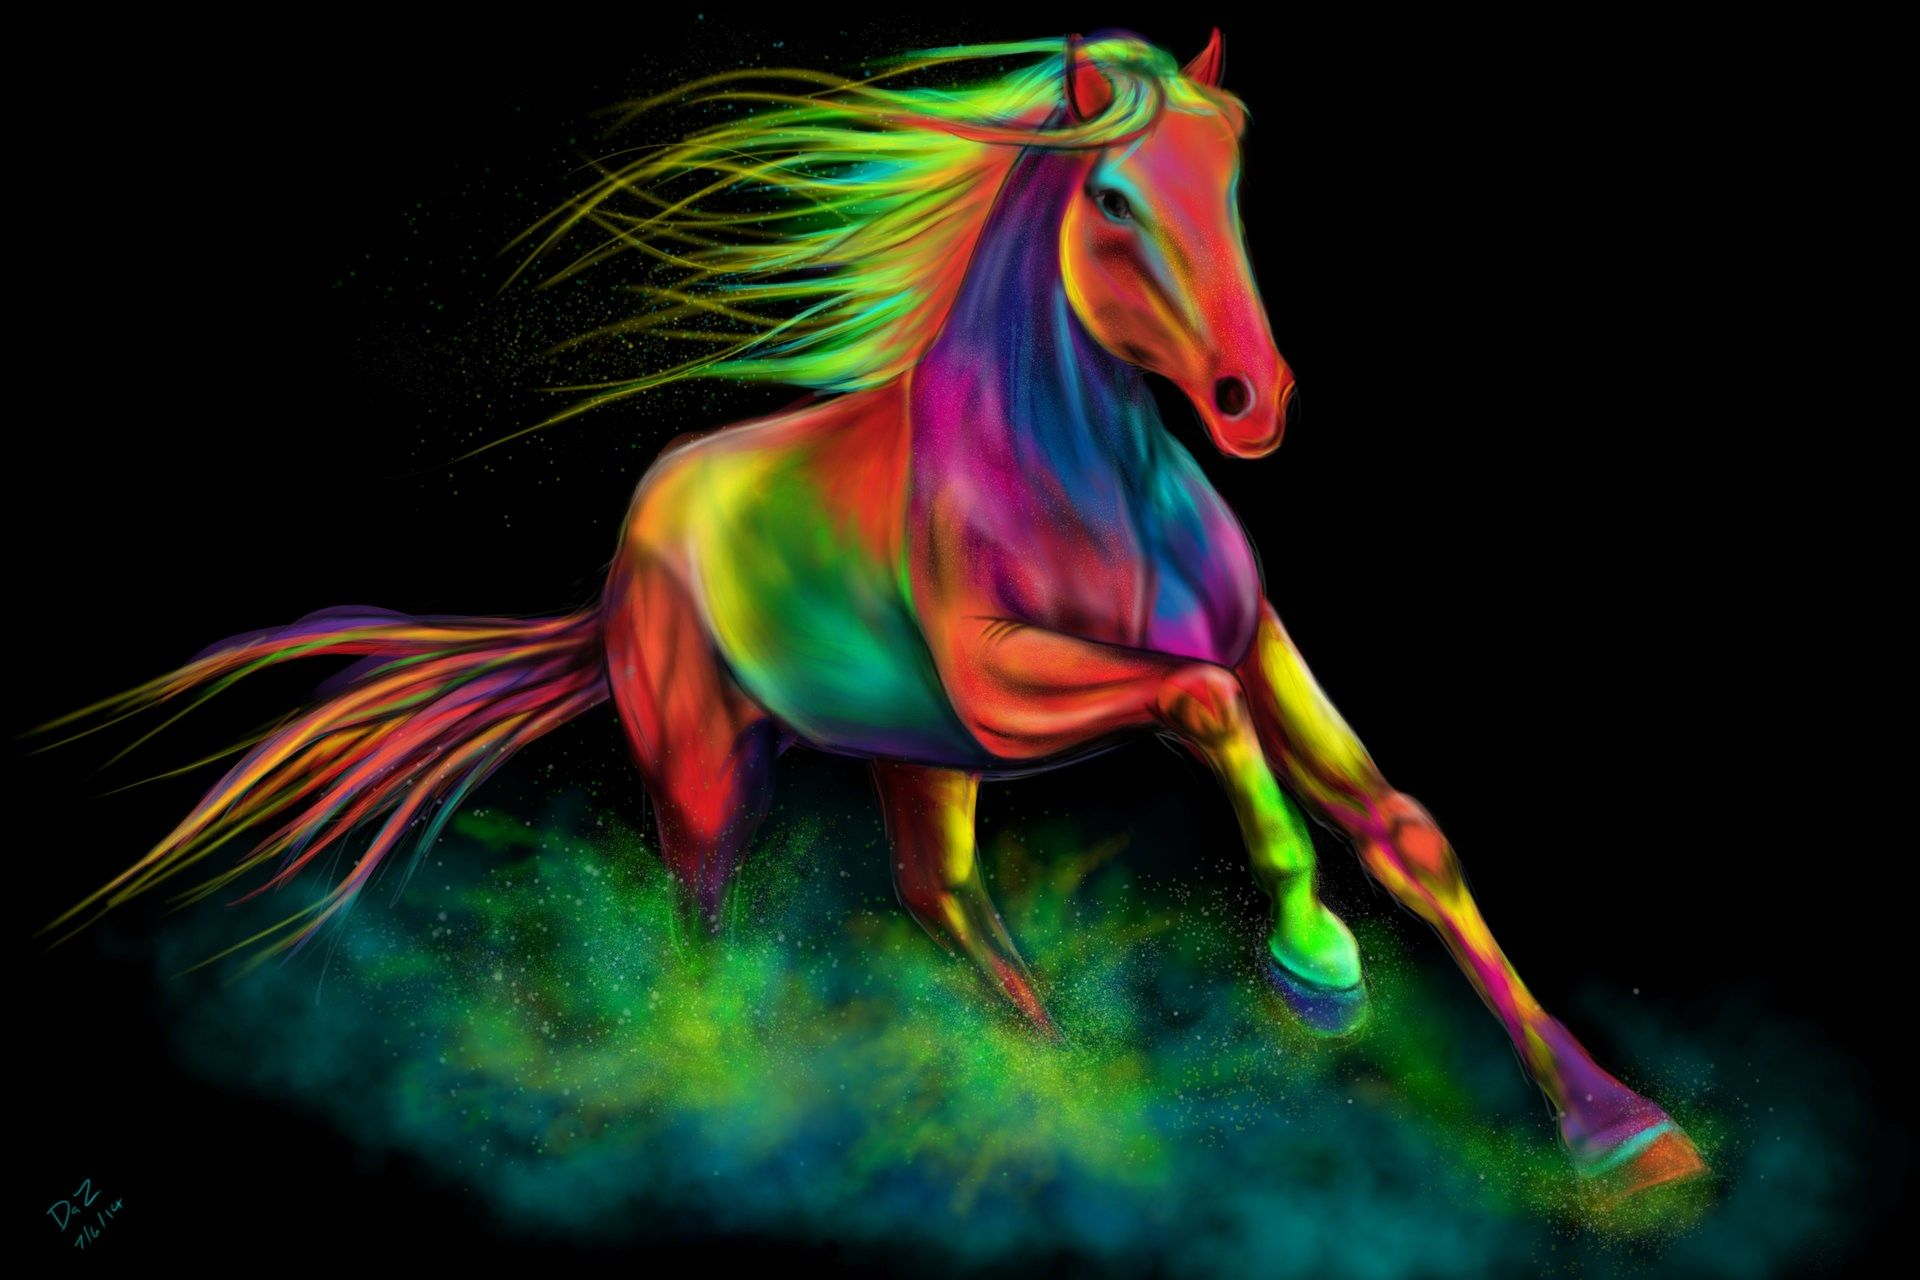 1920x1280px Horse Wallpapers 1080p High Quality By Winter Round Horses Horse Wallpaper Widescreen Wallpaper